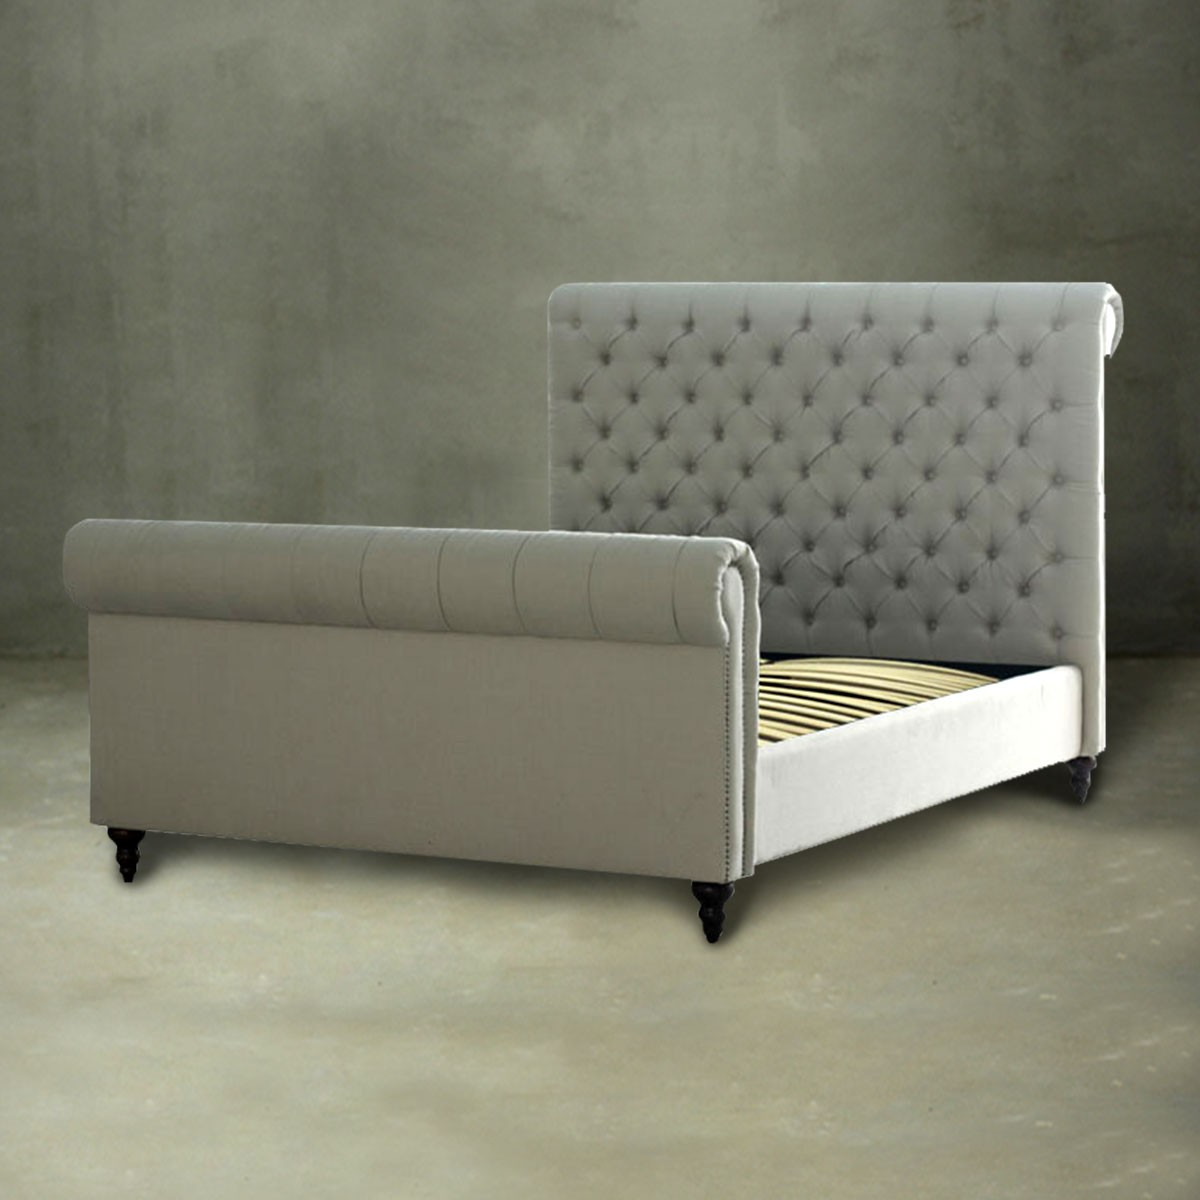 Fabric Beds Canada Queen Platform Bed With Tufted Upholstered Headboard